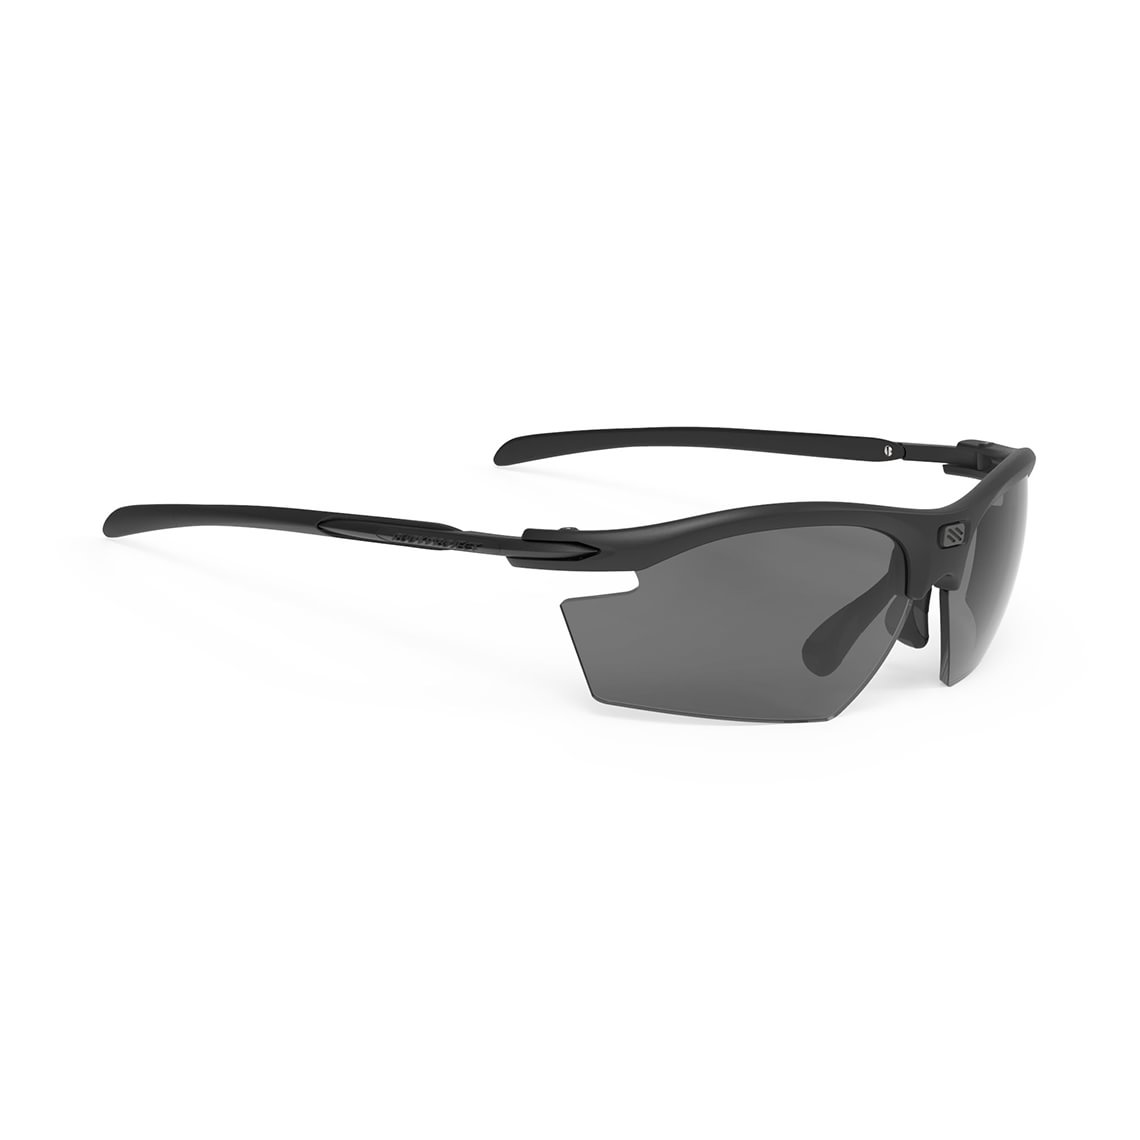 Rudy Project Rydon ImpactX Pure Grey Matte Black SP538006-0001